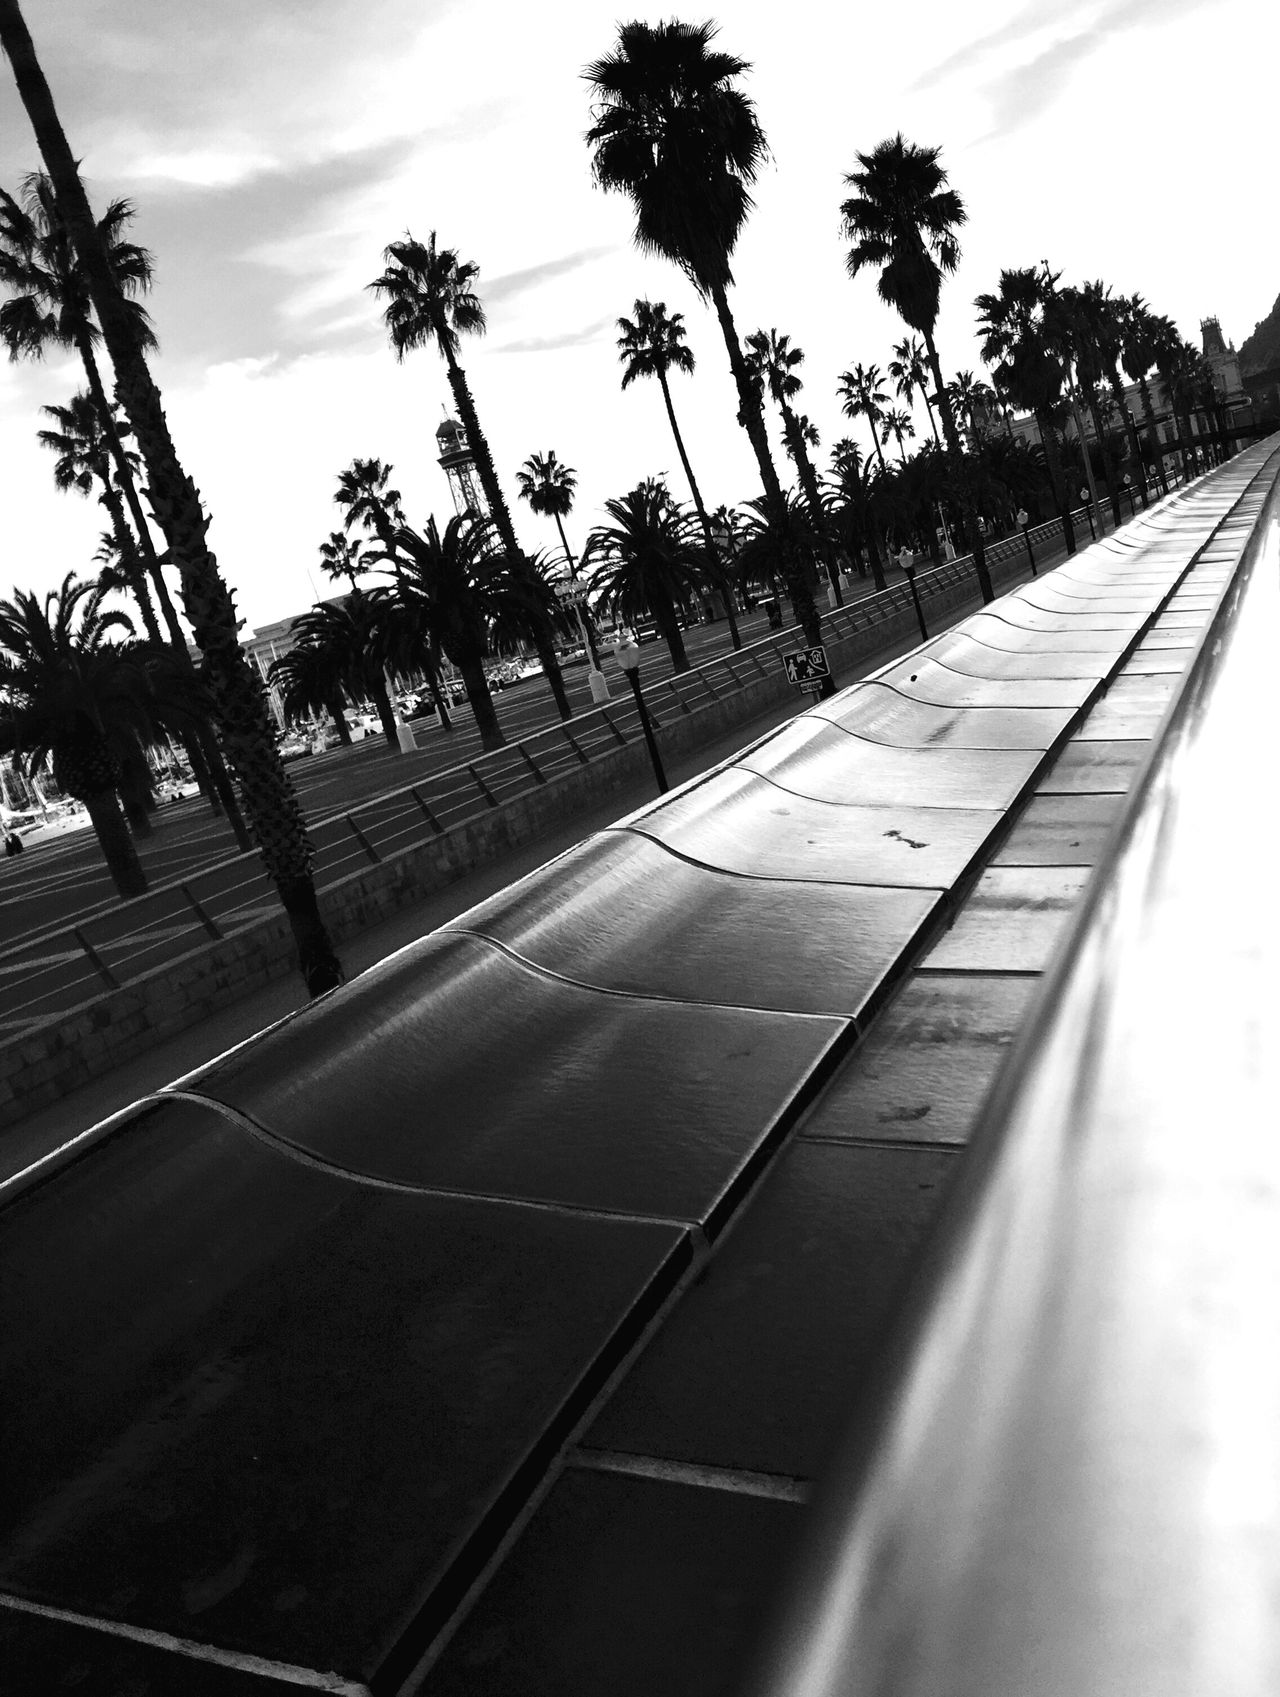 Tree Palm Tree Sky The Way Forward Day No People Outdoors Nature Bnw_collection Streetphotography Streetphoto_bw EyeEm Gallery Blackandwhite Blackandwhite Photography Bnw_captures Barcelona